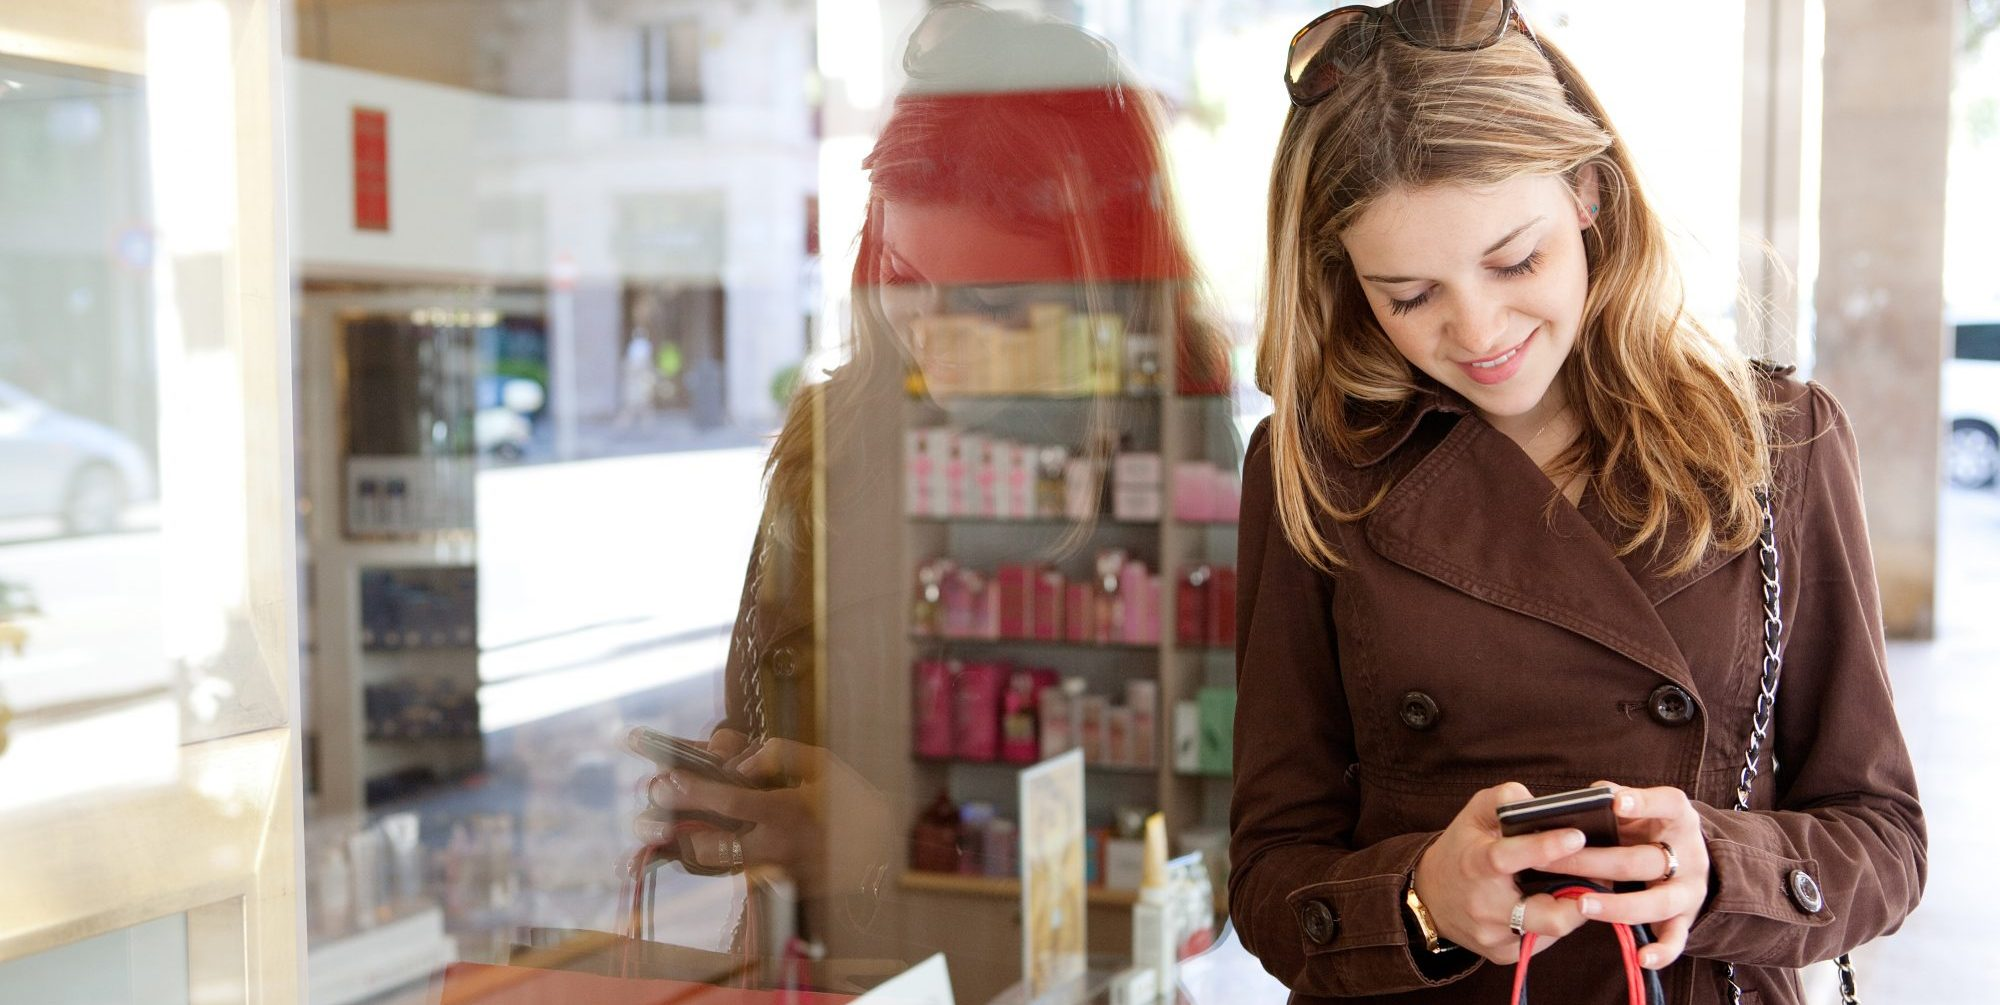 Young woman standing in front of a store while looking at her phone.